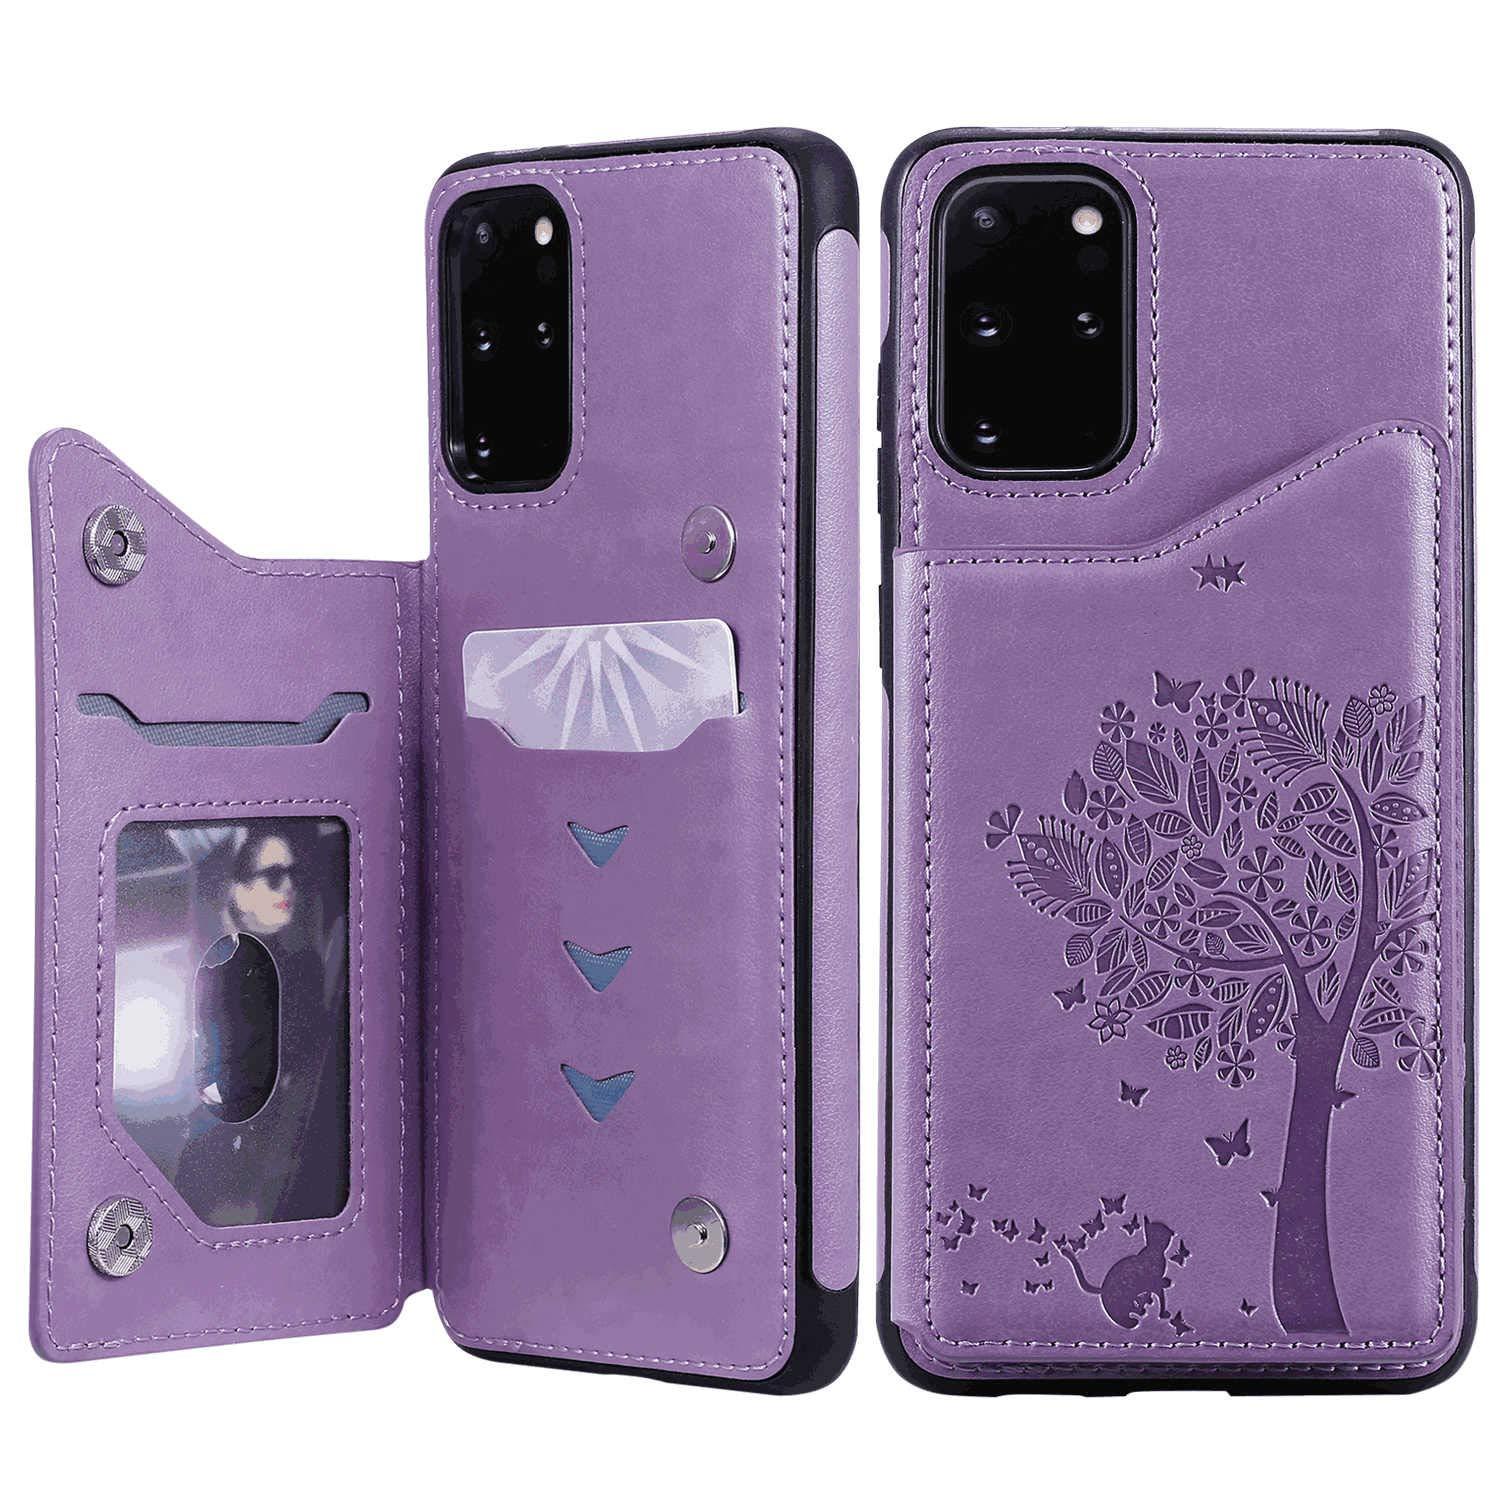 Flip Case for Samsung Galaxy S20 Plus S20+ Rose Gold PU Leather Wallet Cover Compatible with Samsung Galaxy S20 Plus S20+